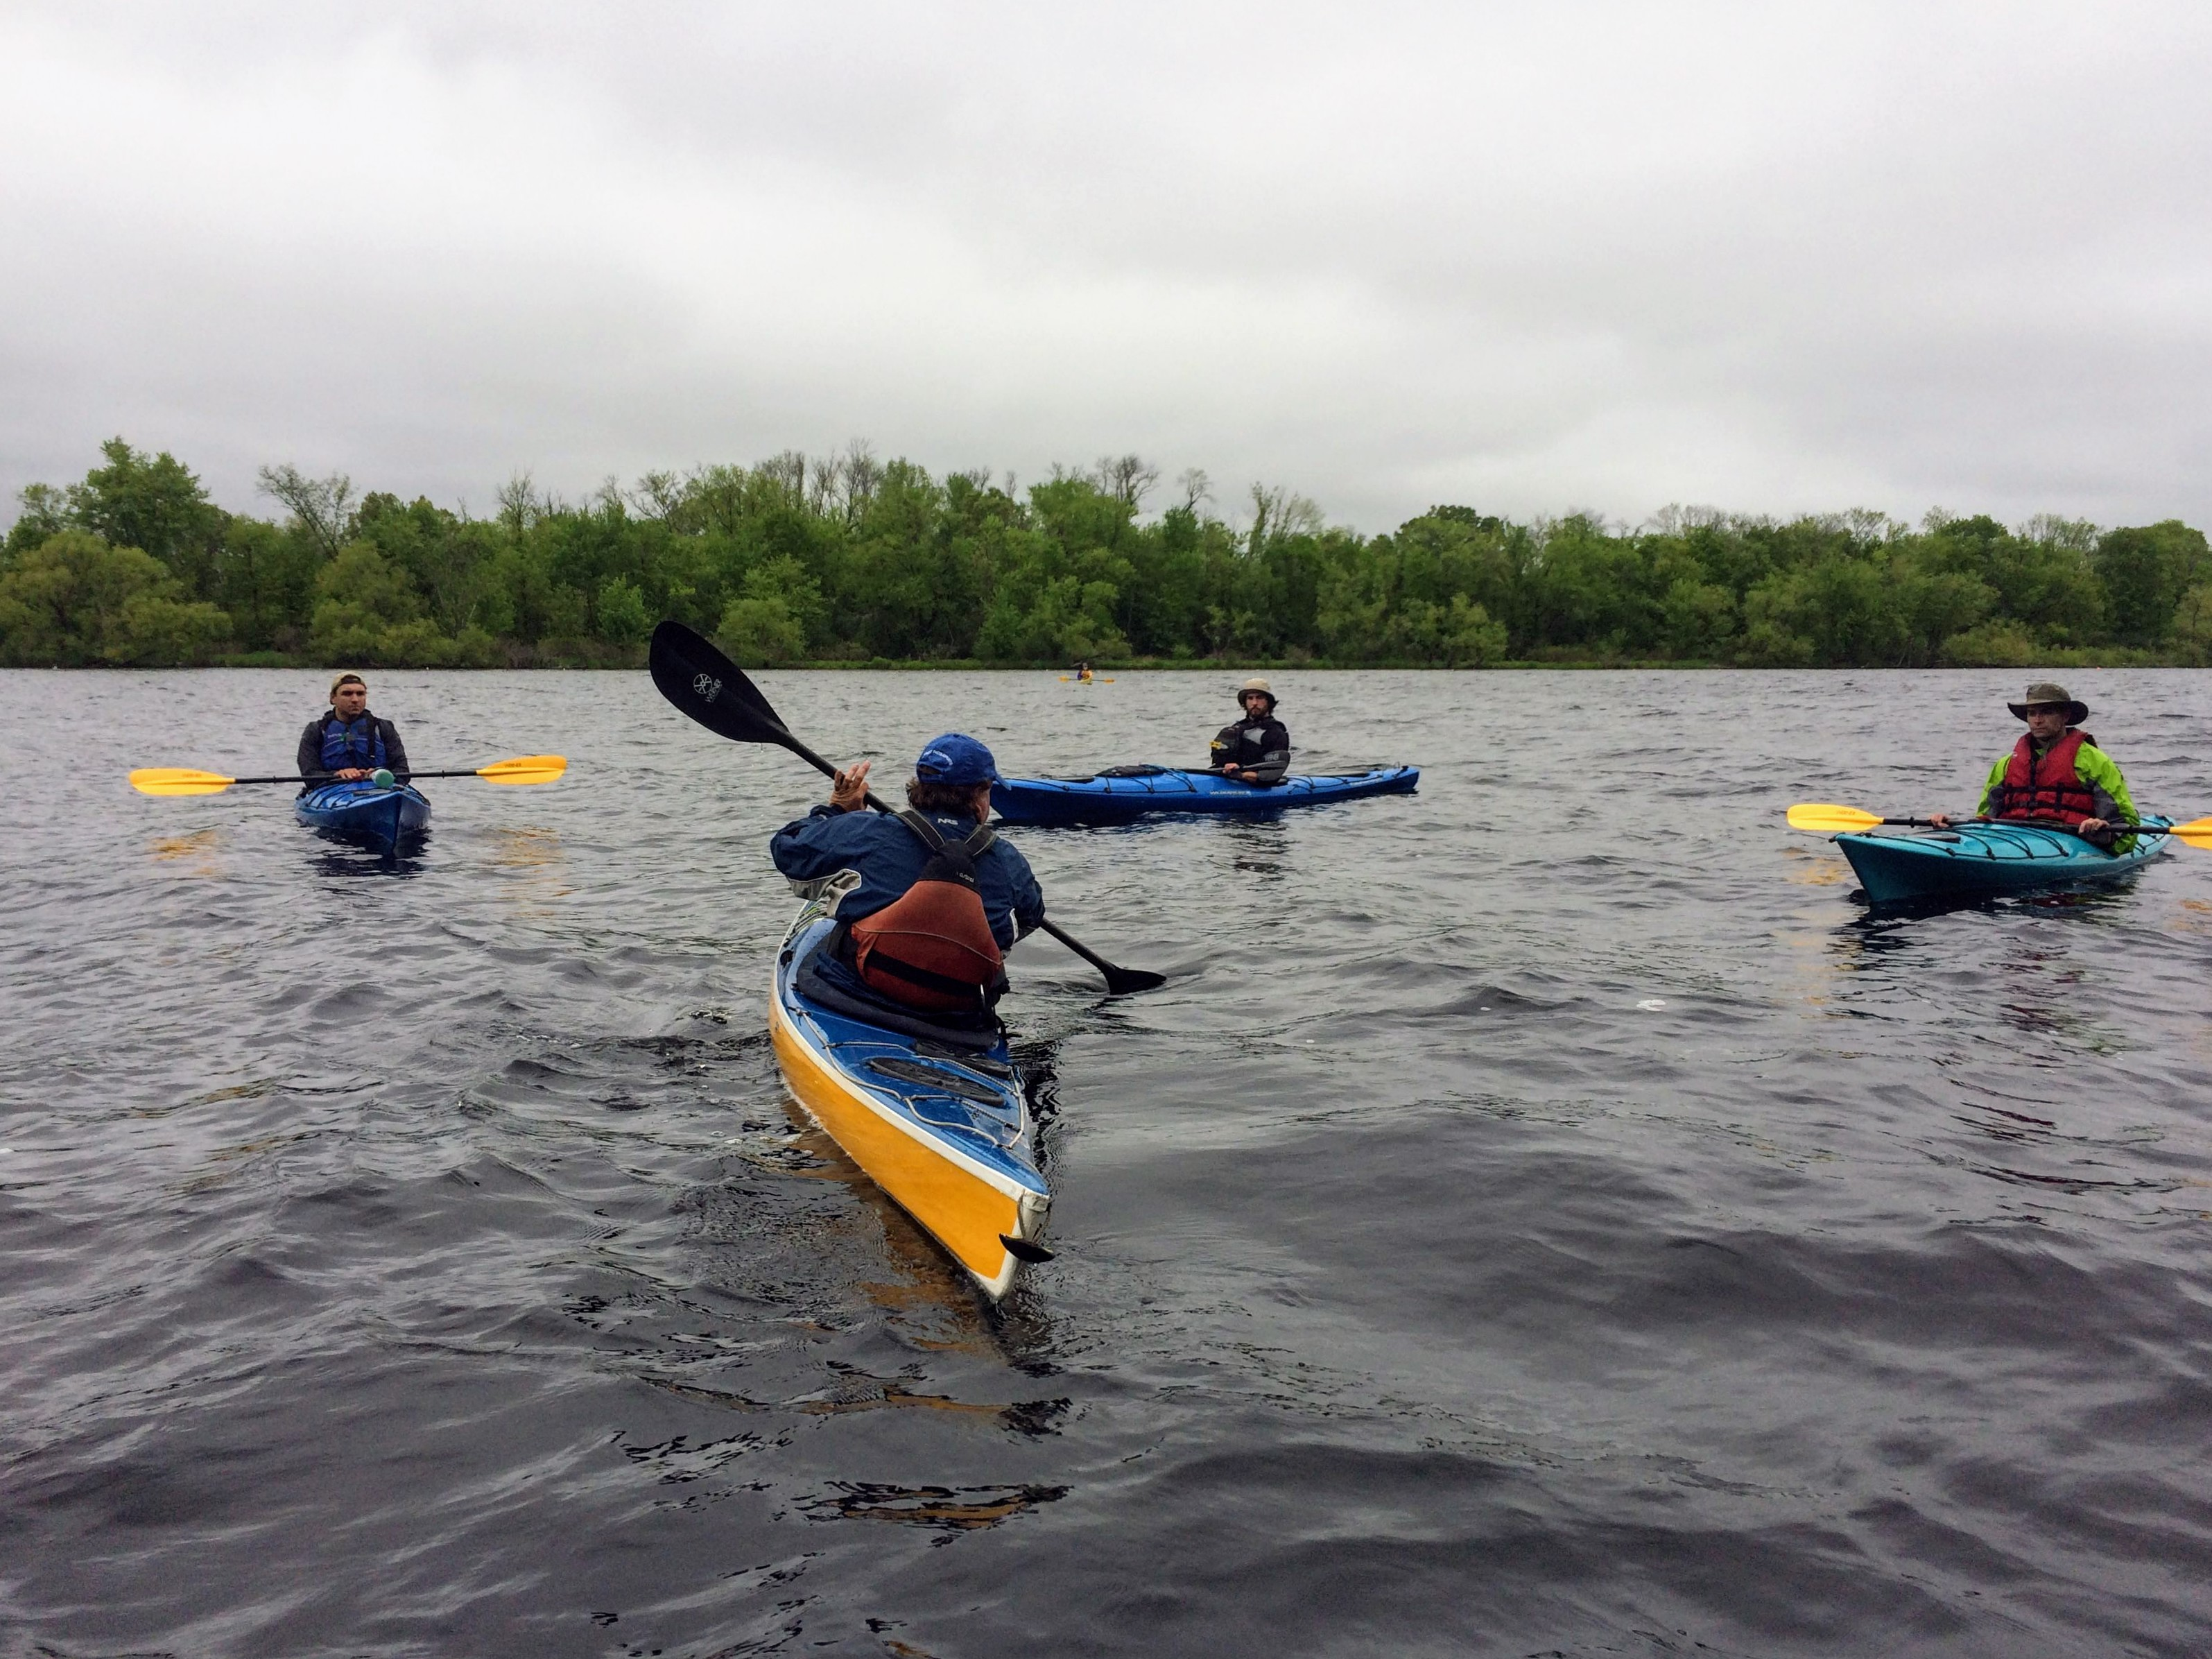 Kayak strokes class. One kayaker instructing three others.